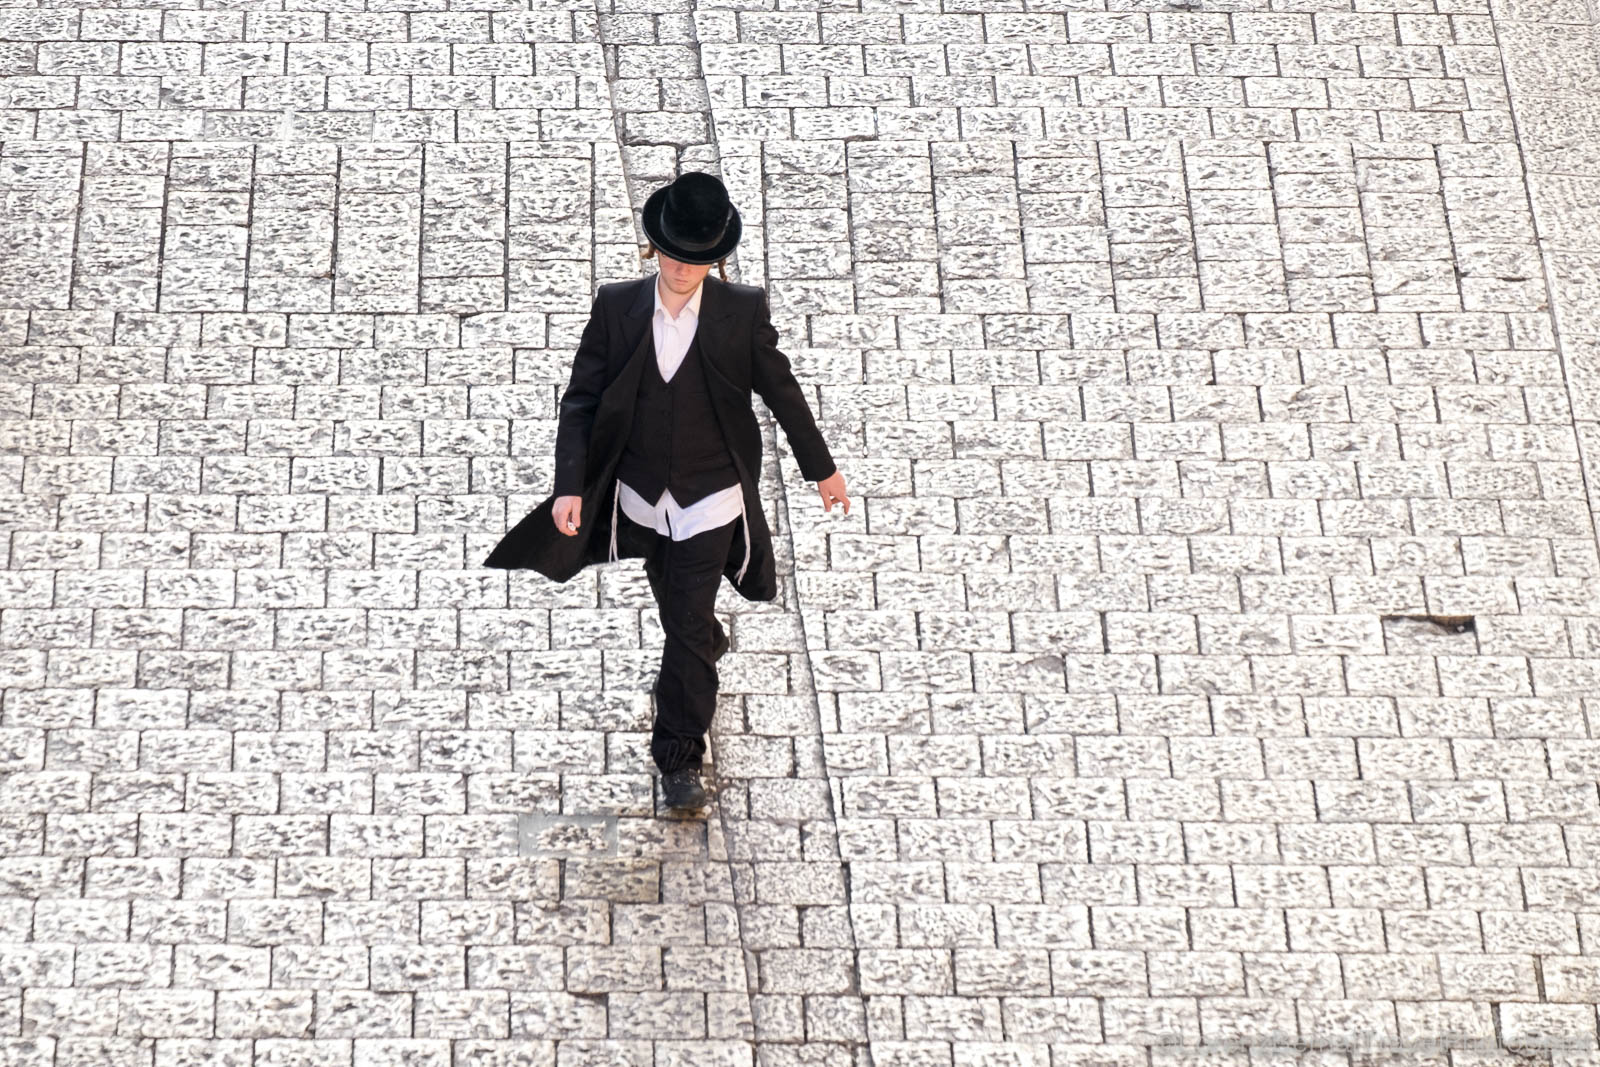 Jerusalem Street photography : photo from above of a young jewish man passing by in a paved street of the old city.